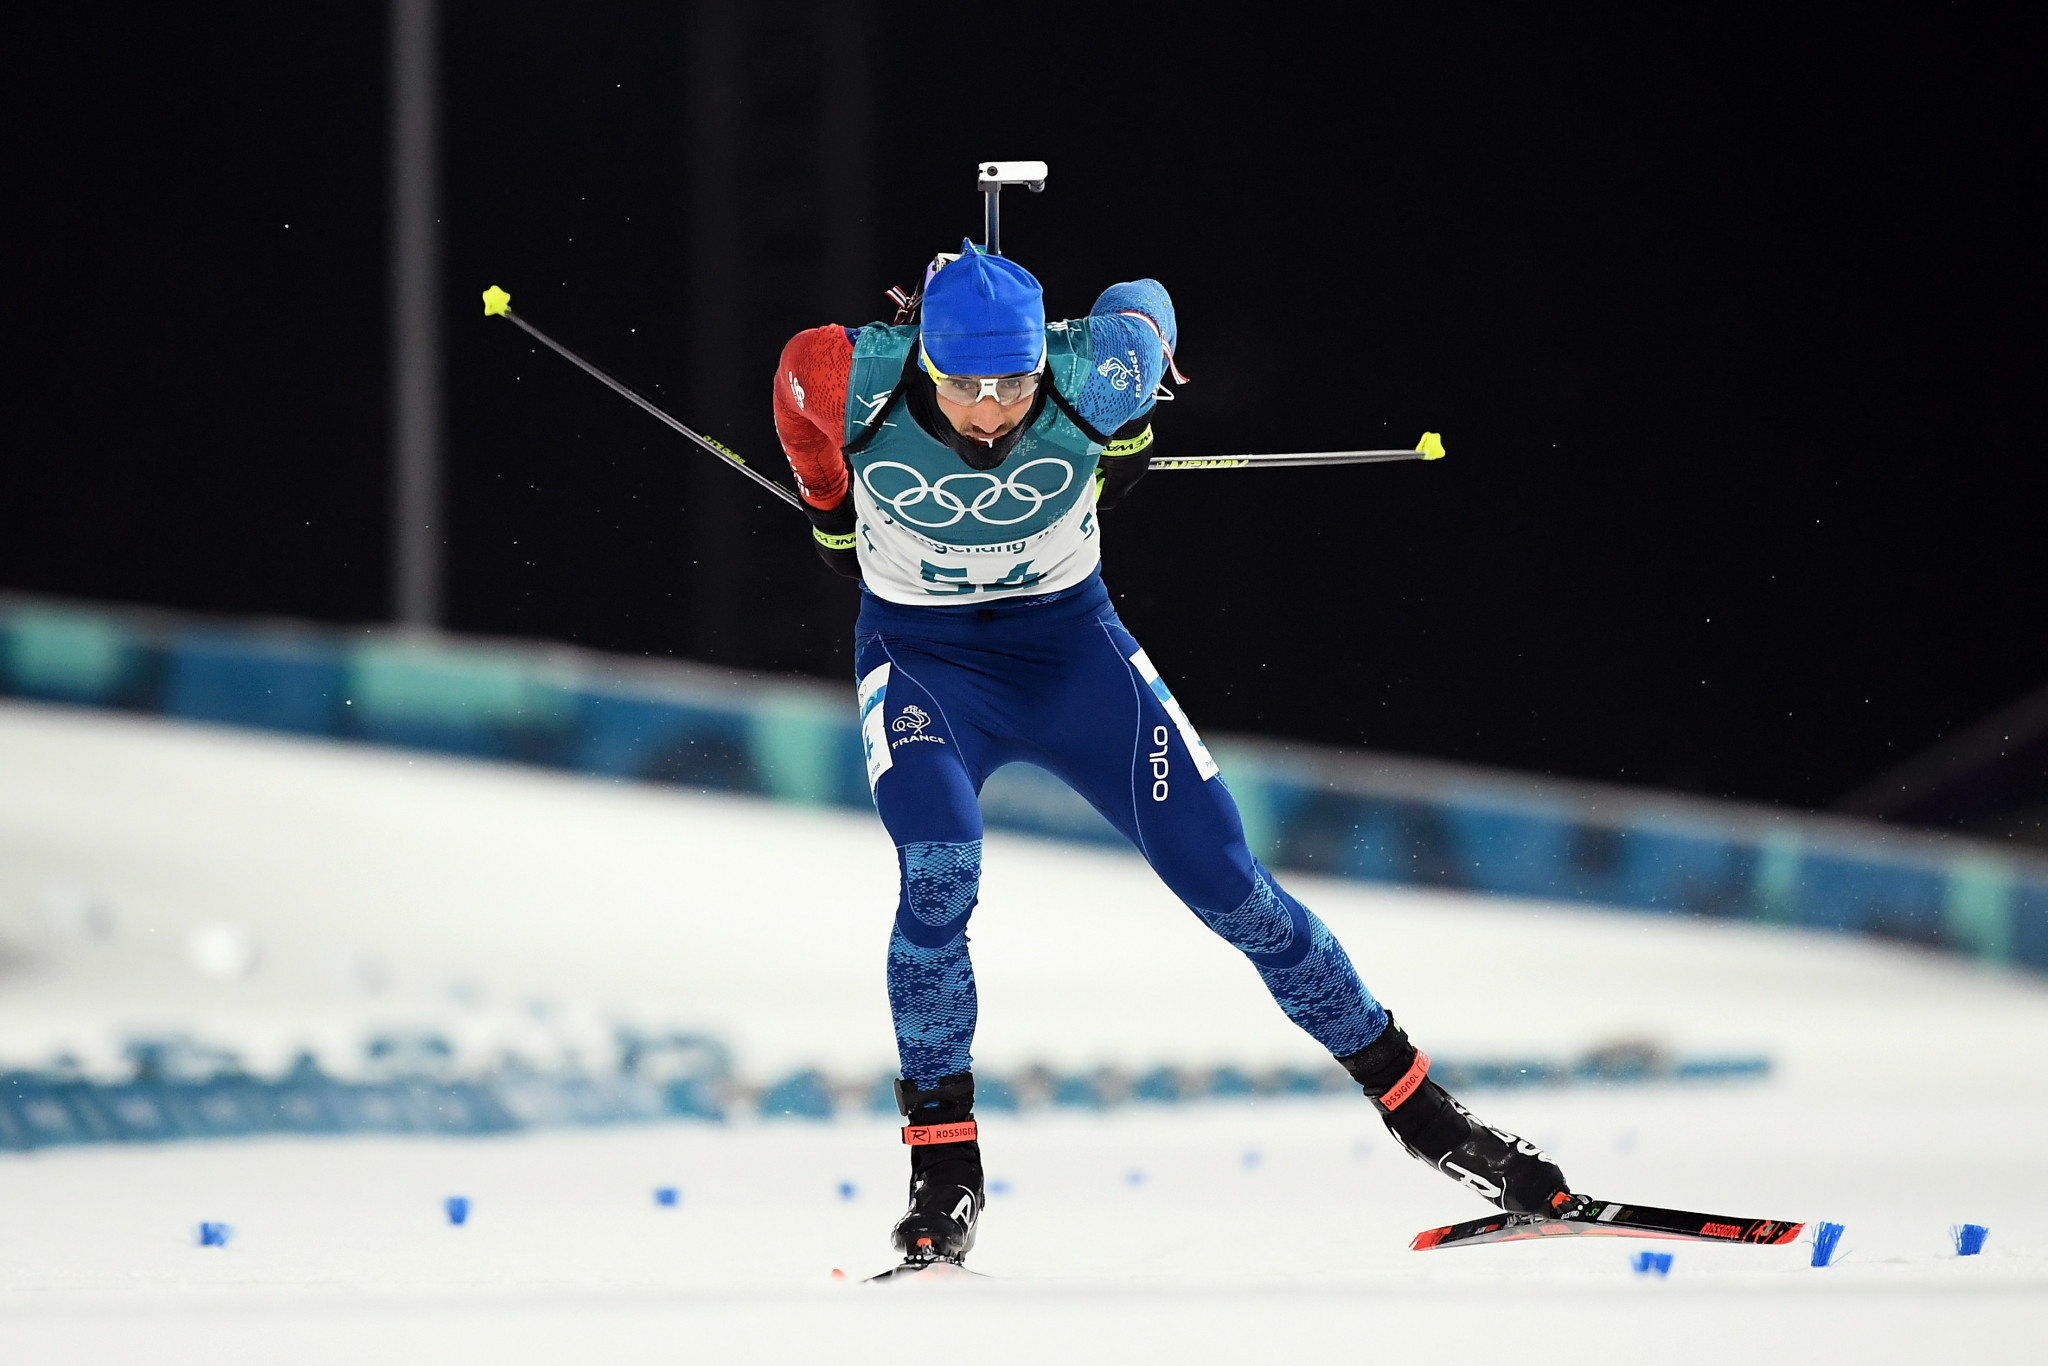 Peiffer of Germany wins men's biathlon 10km sprint at PyeongChang Olympics